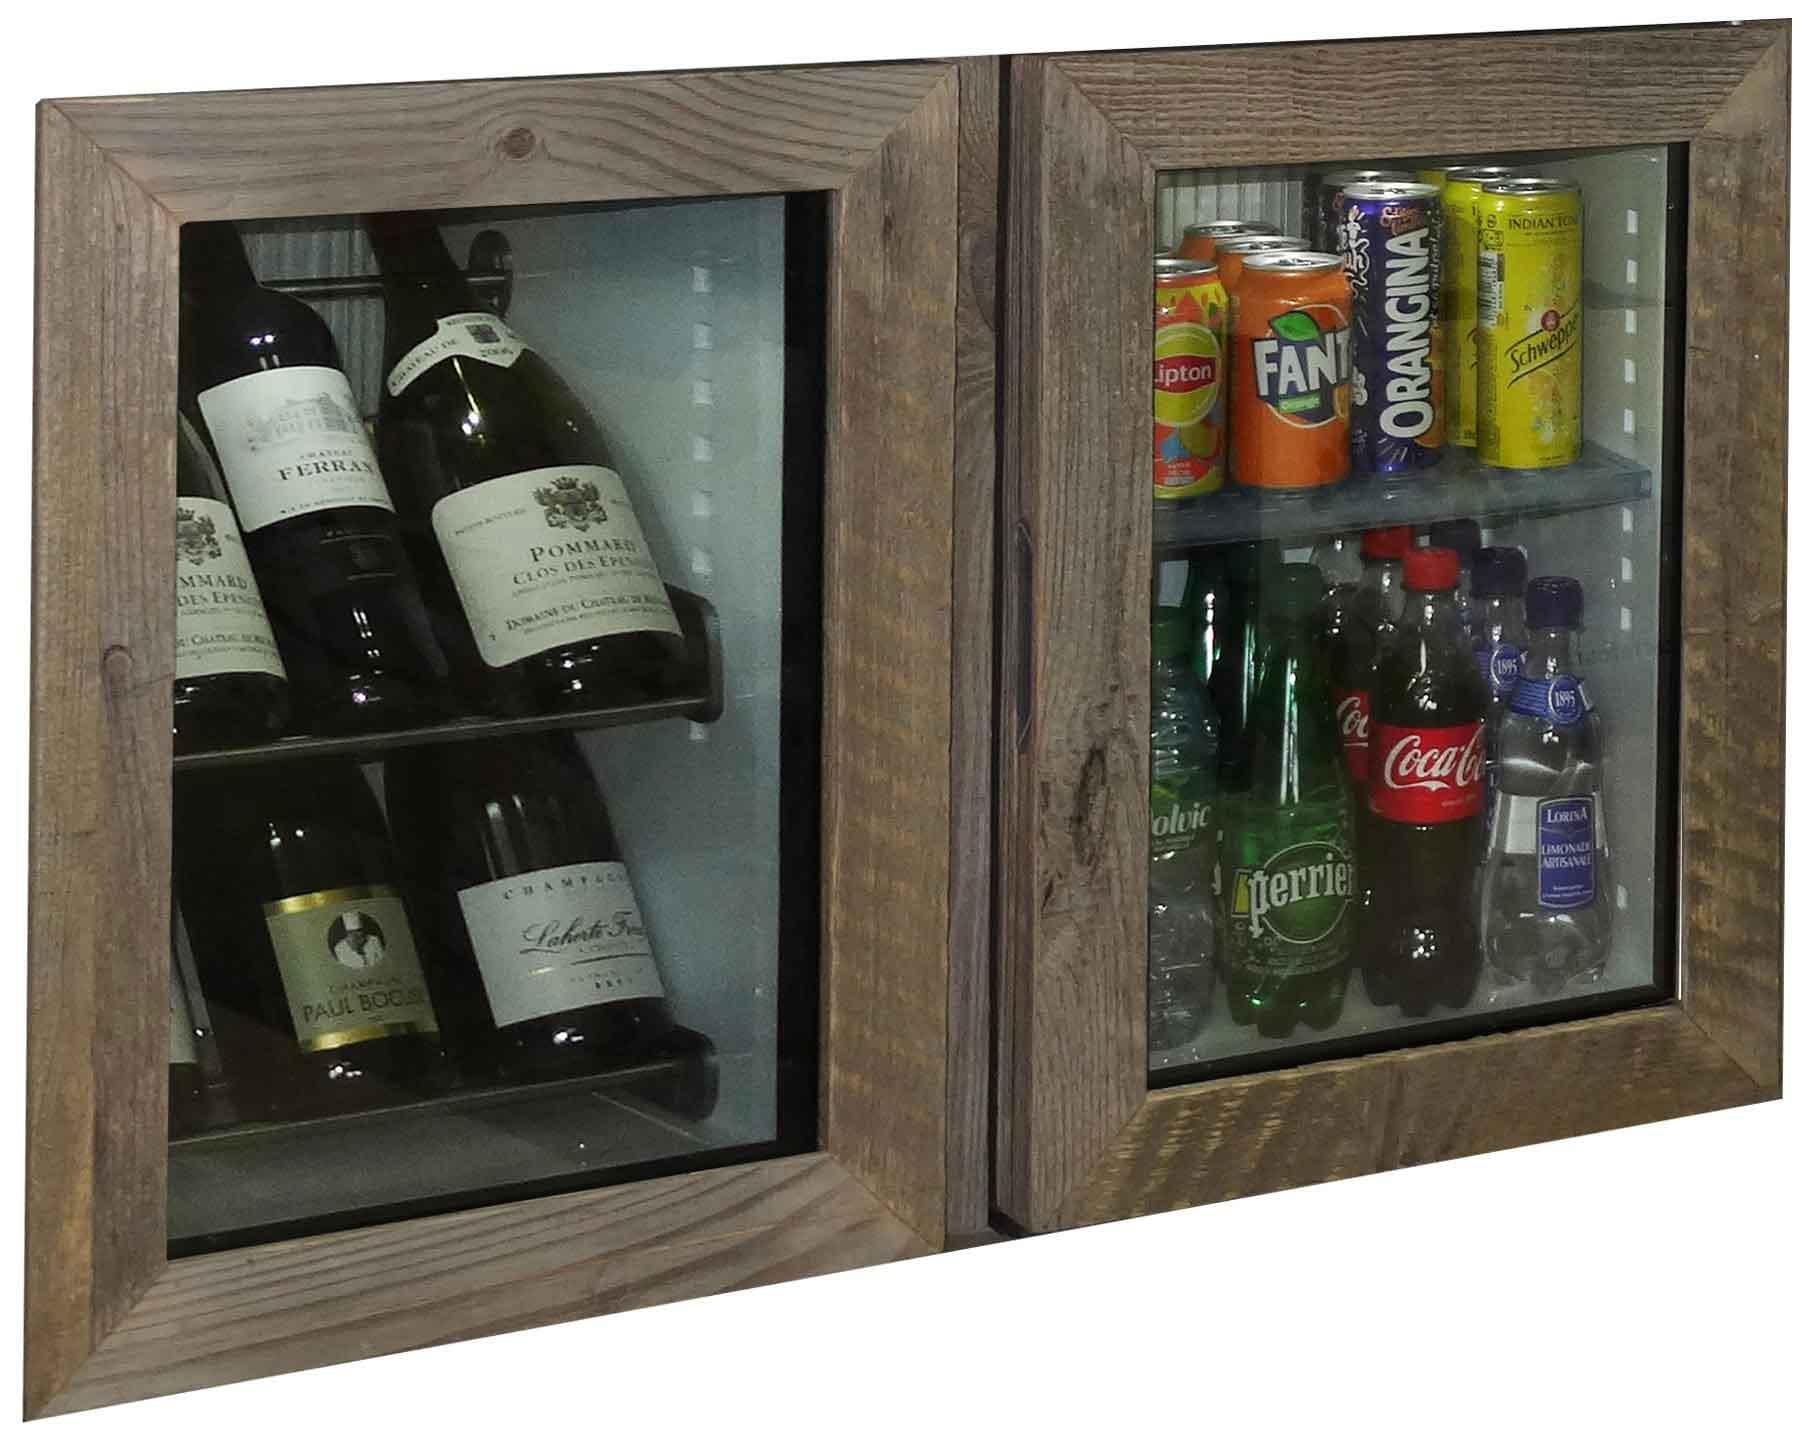 Minibar on the right hand side and Mini-winebar on the left hand side